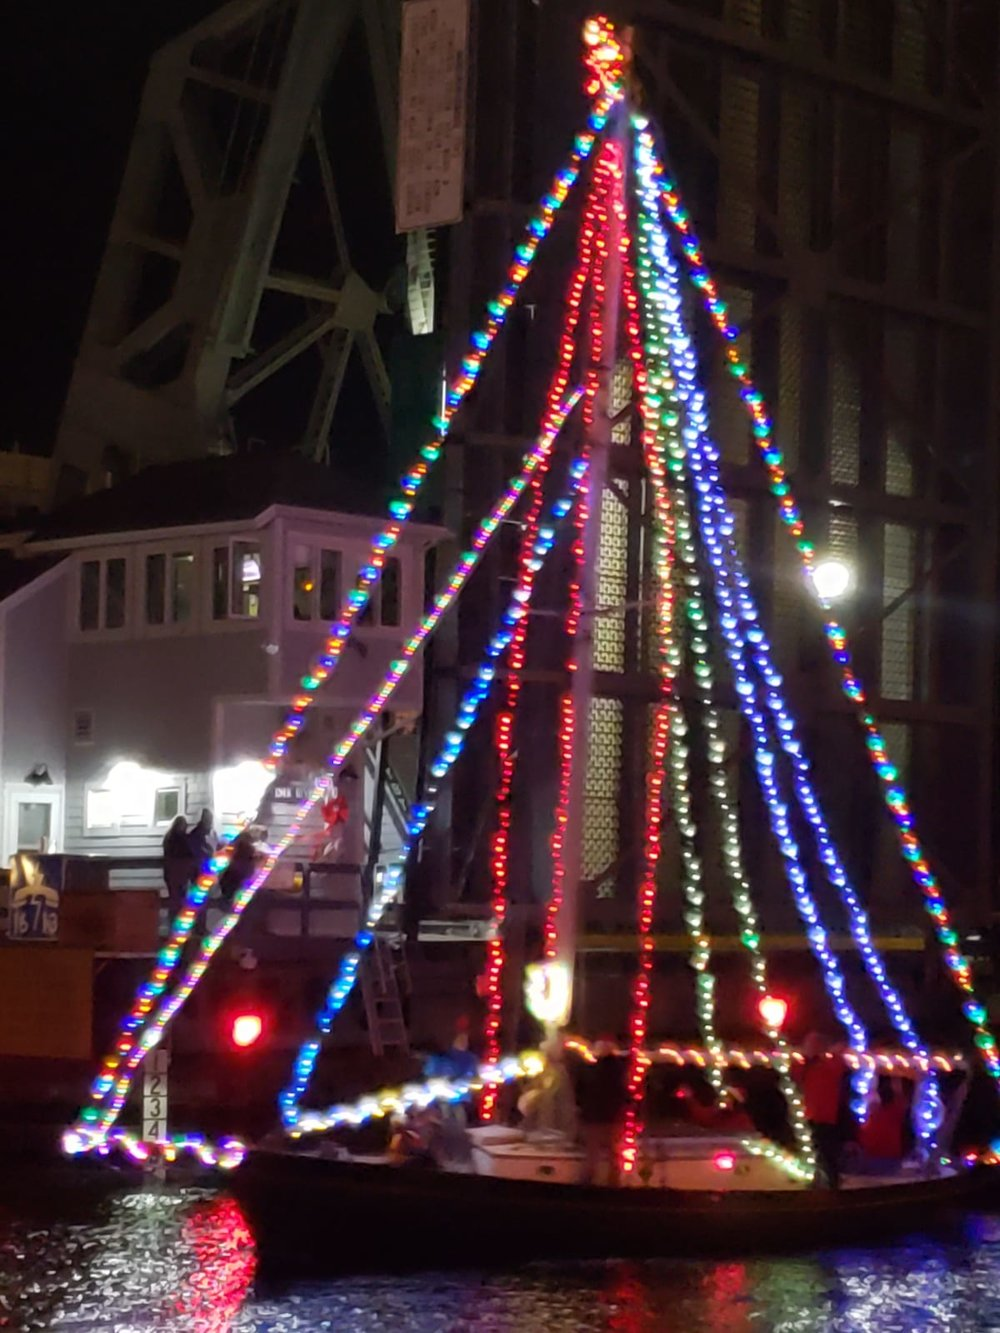 One of the boats in the holiday lighted boat parade.